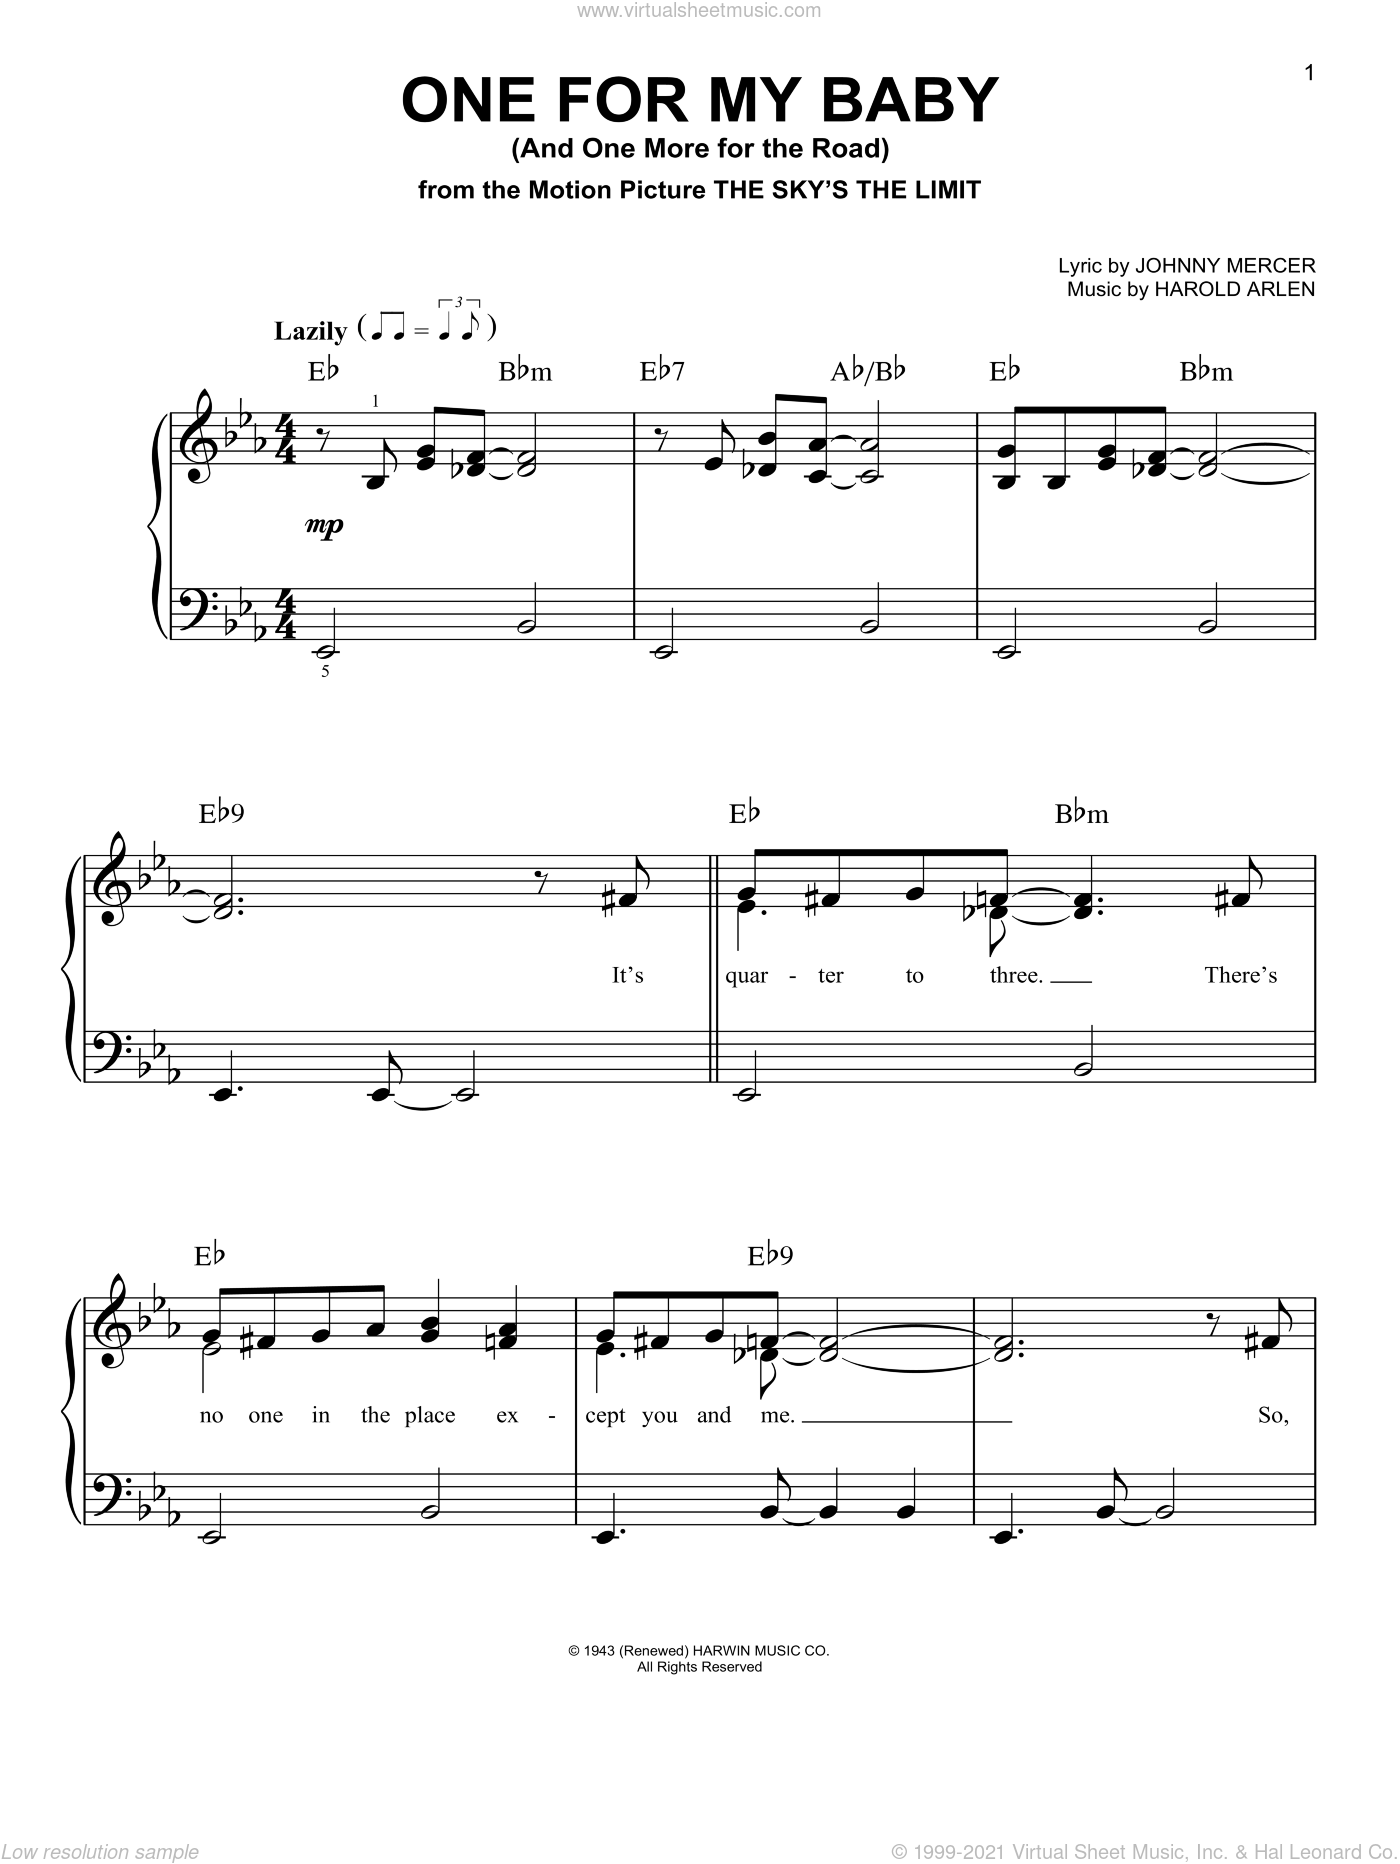 One For My Baby (And One More For The Road) sheet music for piano solo by Tony Bennett, Harold Arlen and Johnny Mercer, easy skill level